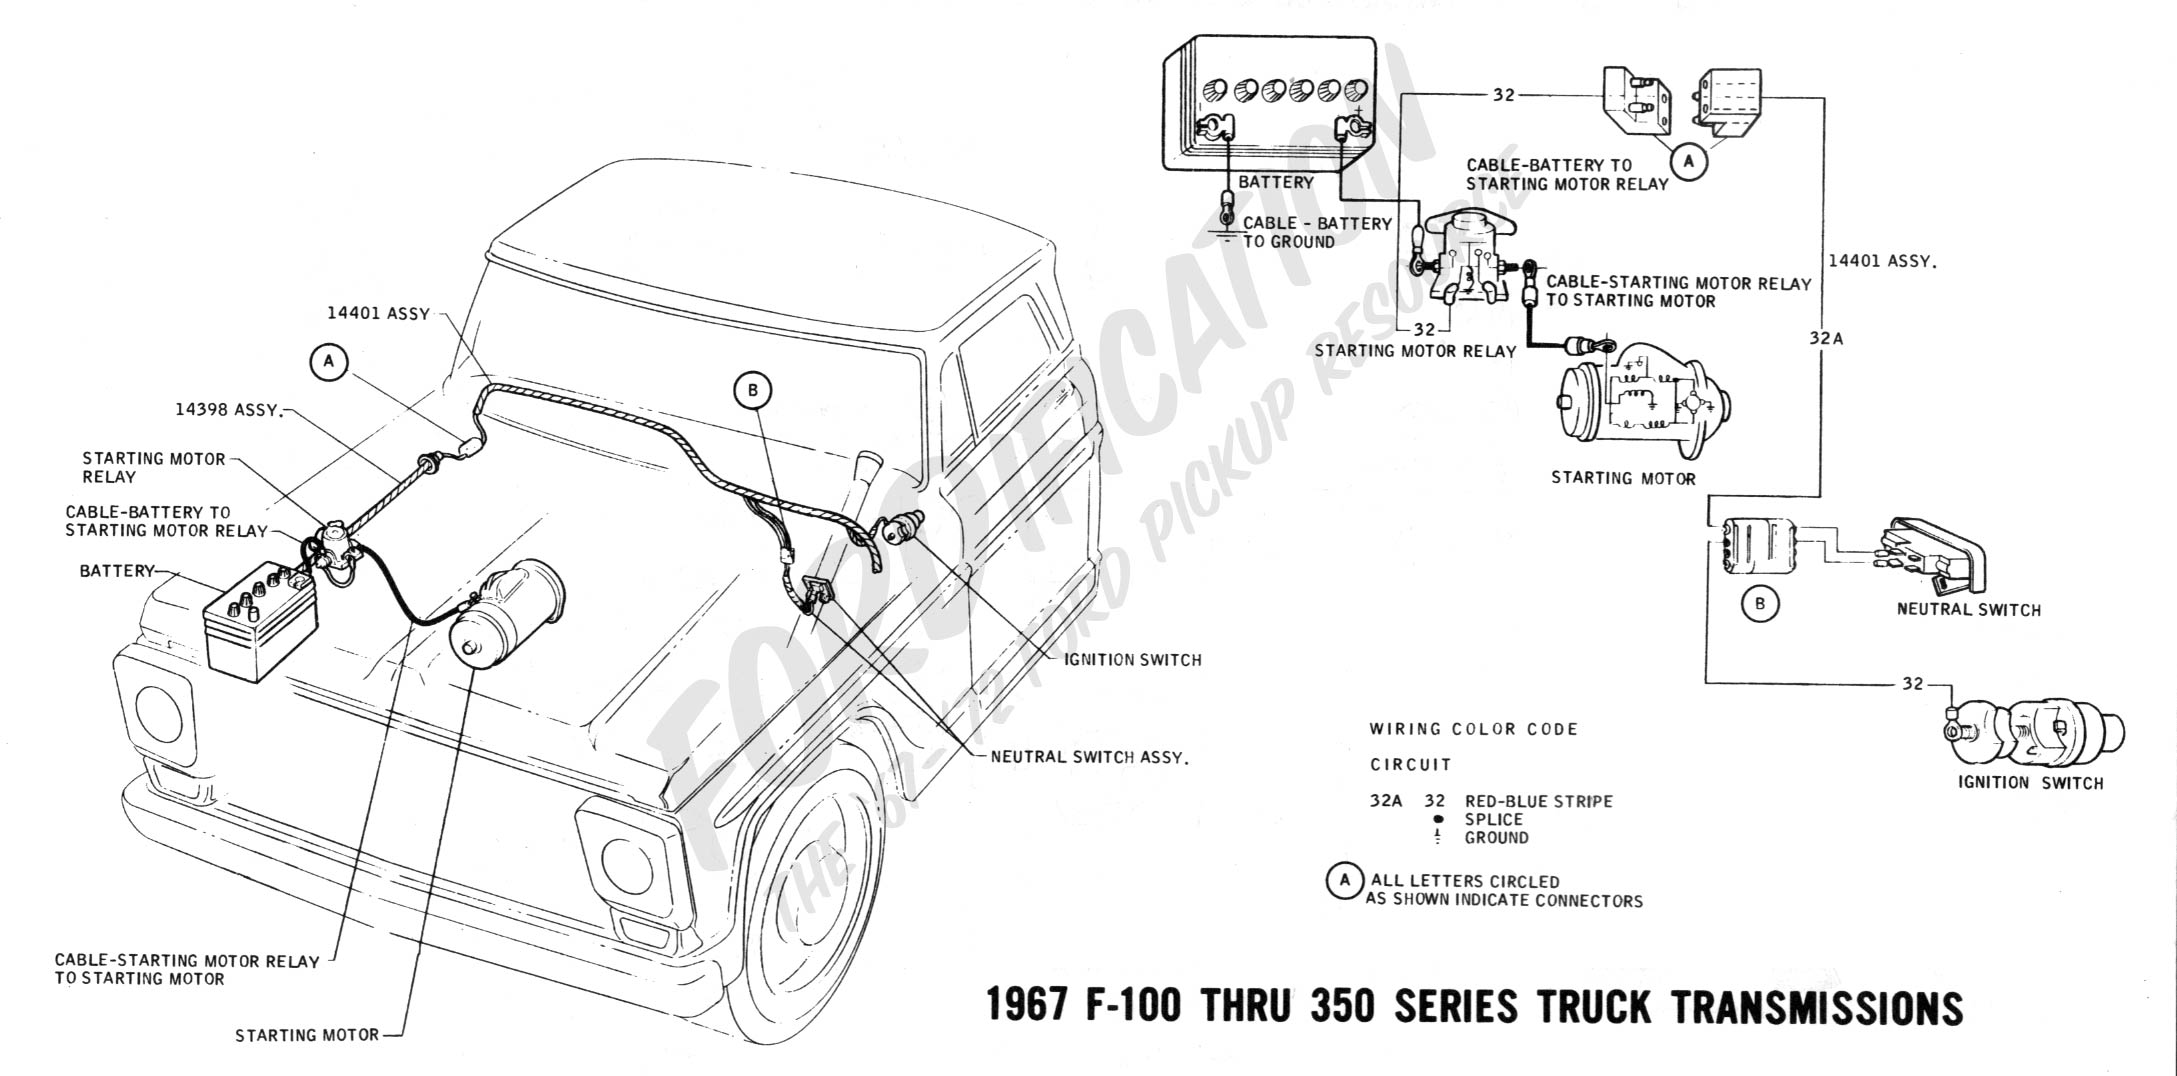 Ford F 250 Wiring Diagram. Ford. Wiring Diagram Images